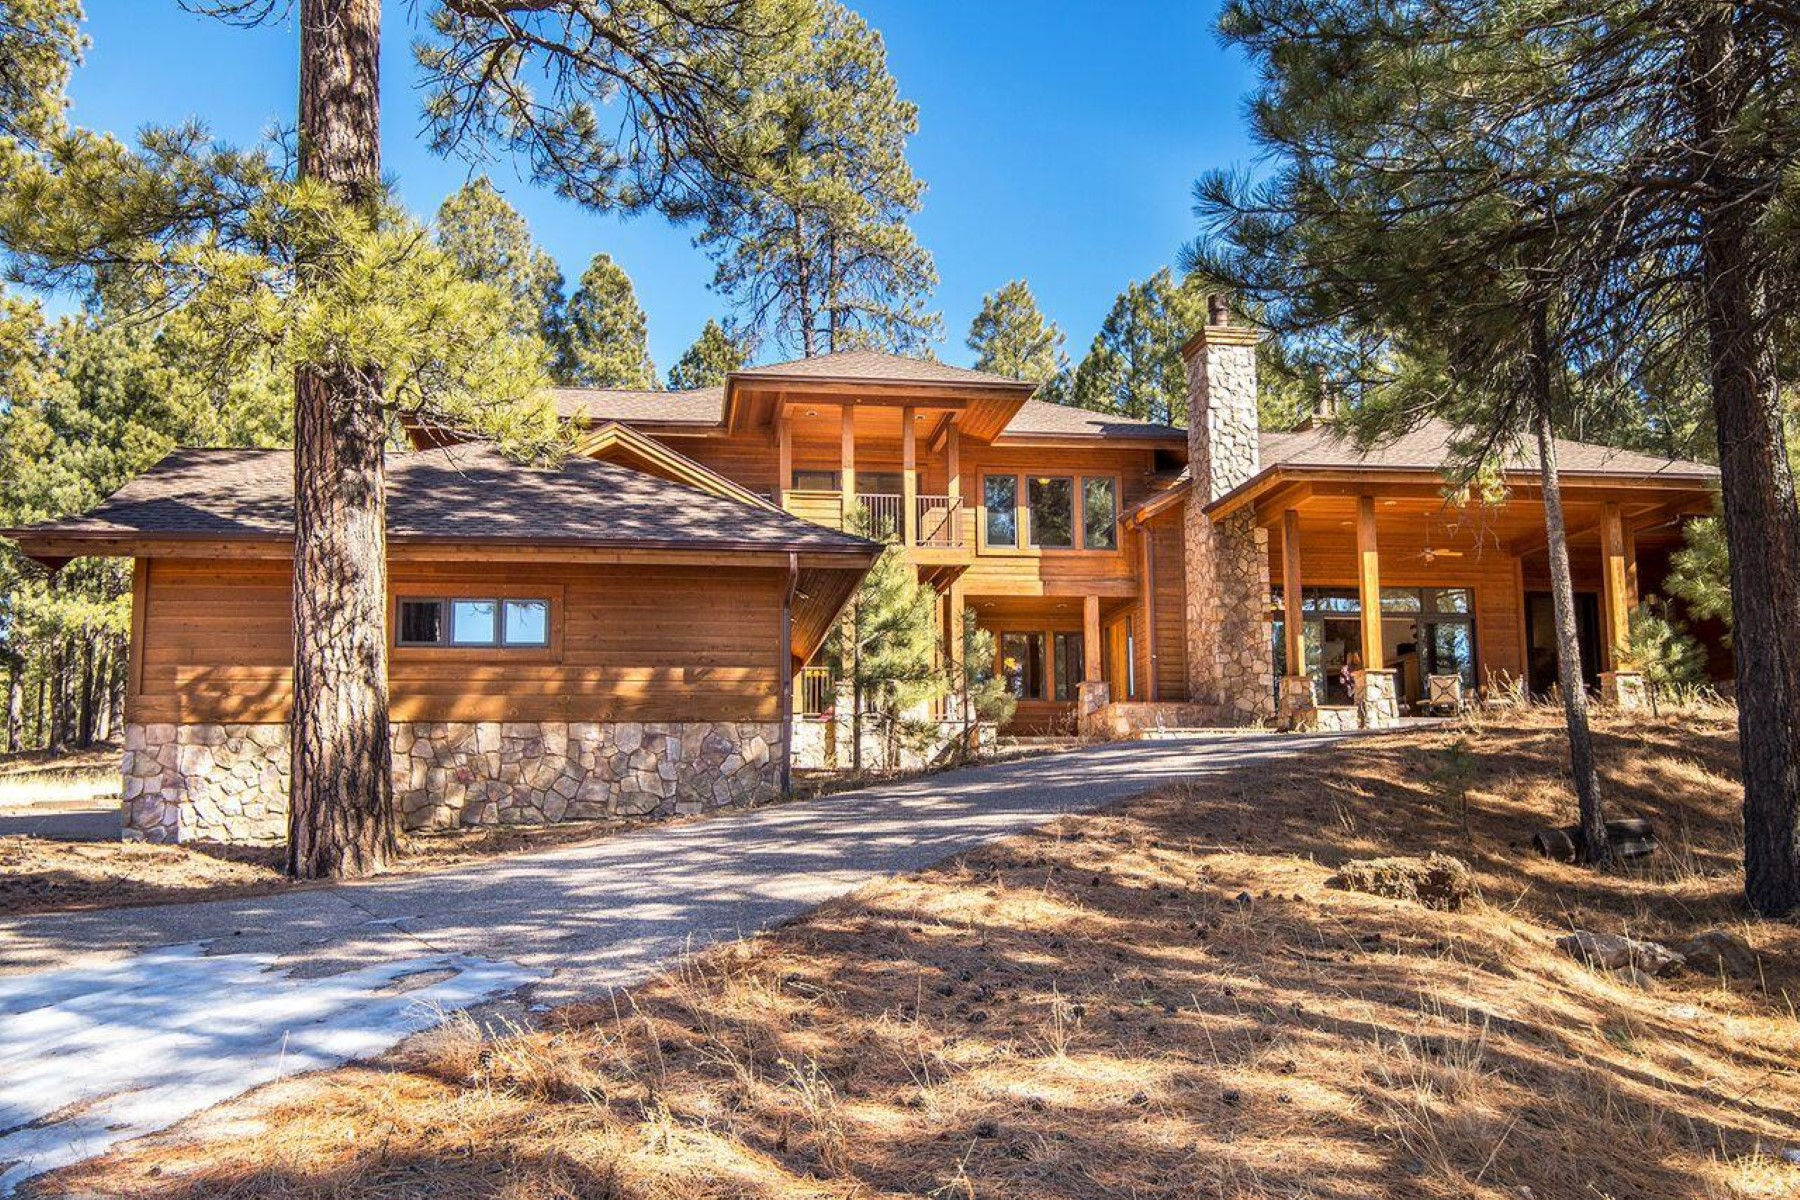 Casa Unifamiliar por un Venta en Modern Finishes Meets Mountain Living 2227 Andrew Douglass, Flagstaff, Arizona, 86005 Estados Unidos